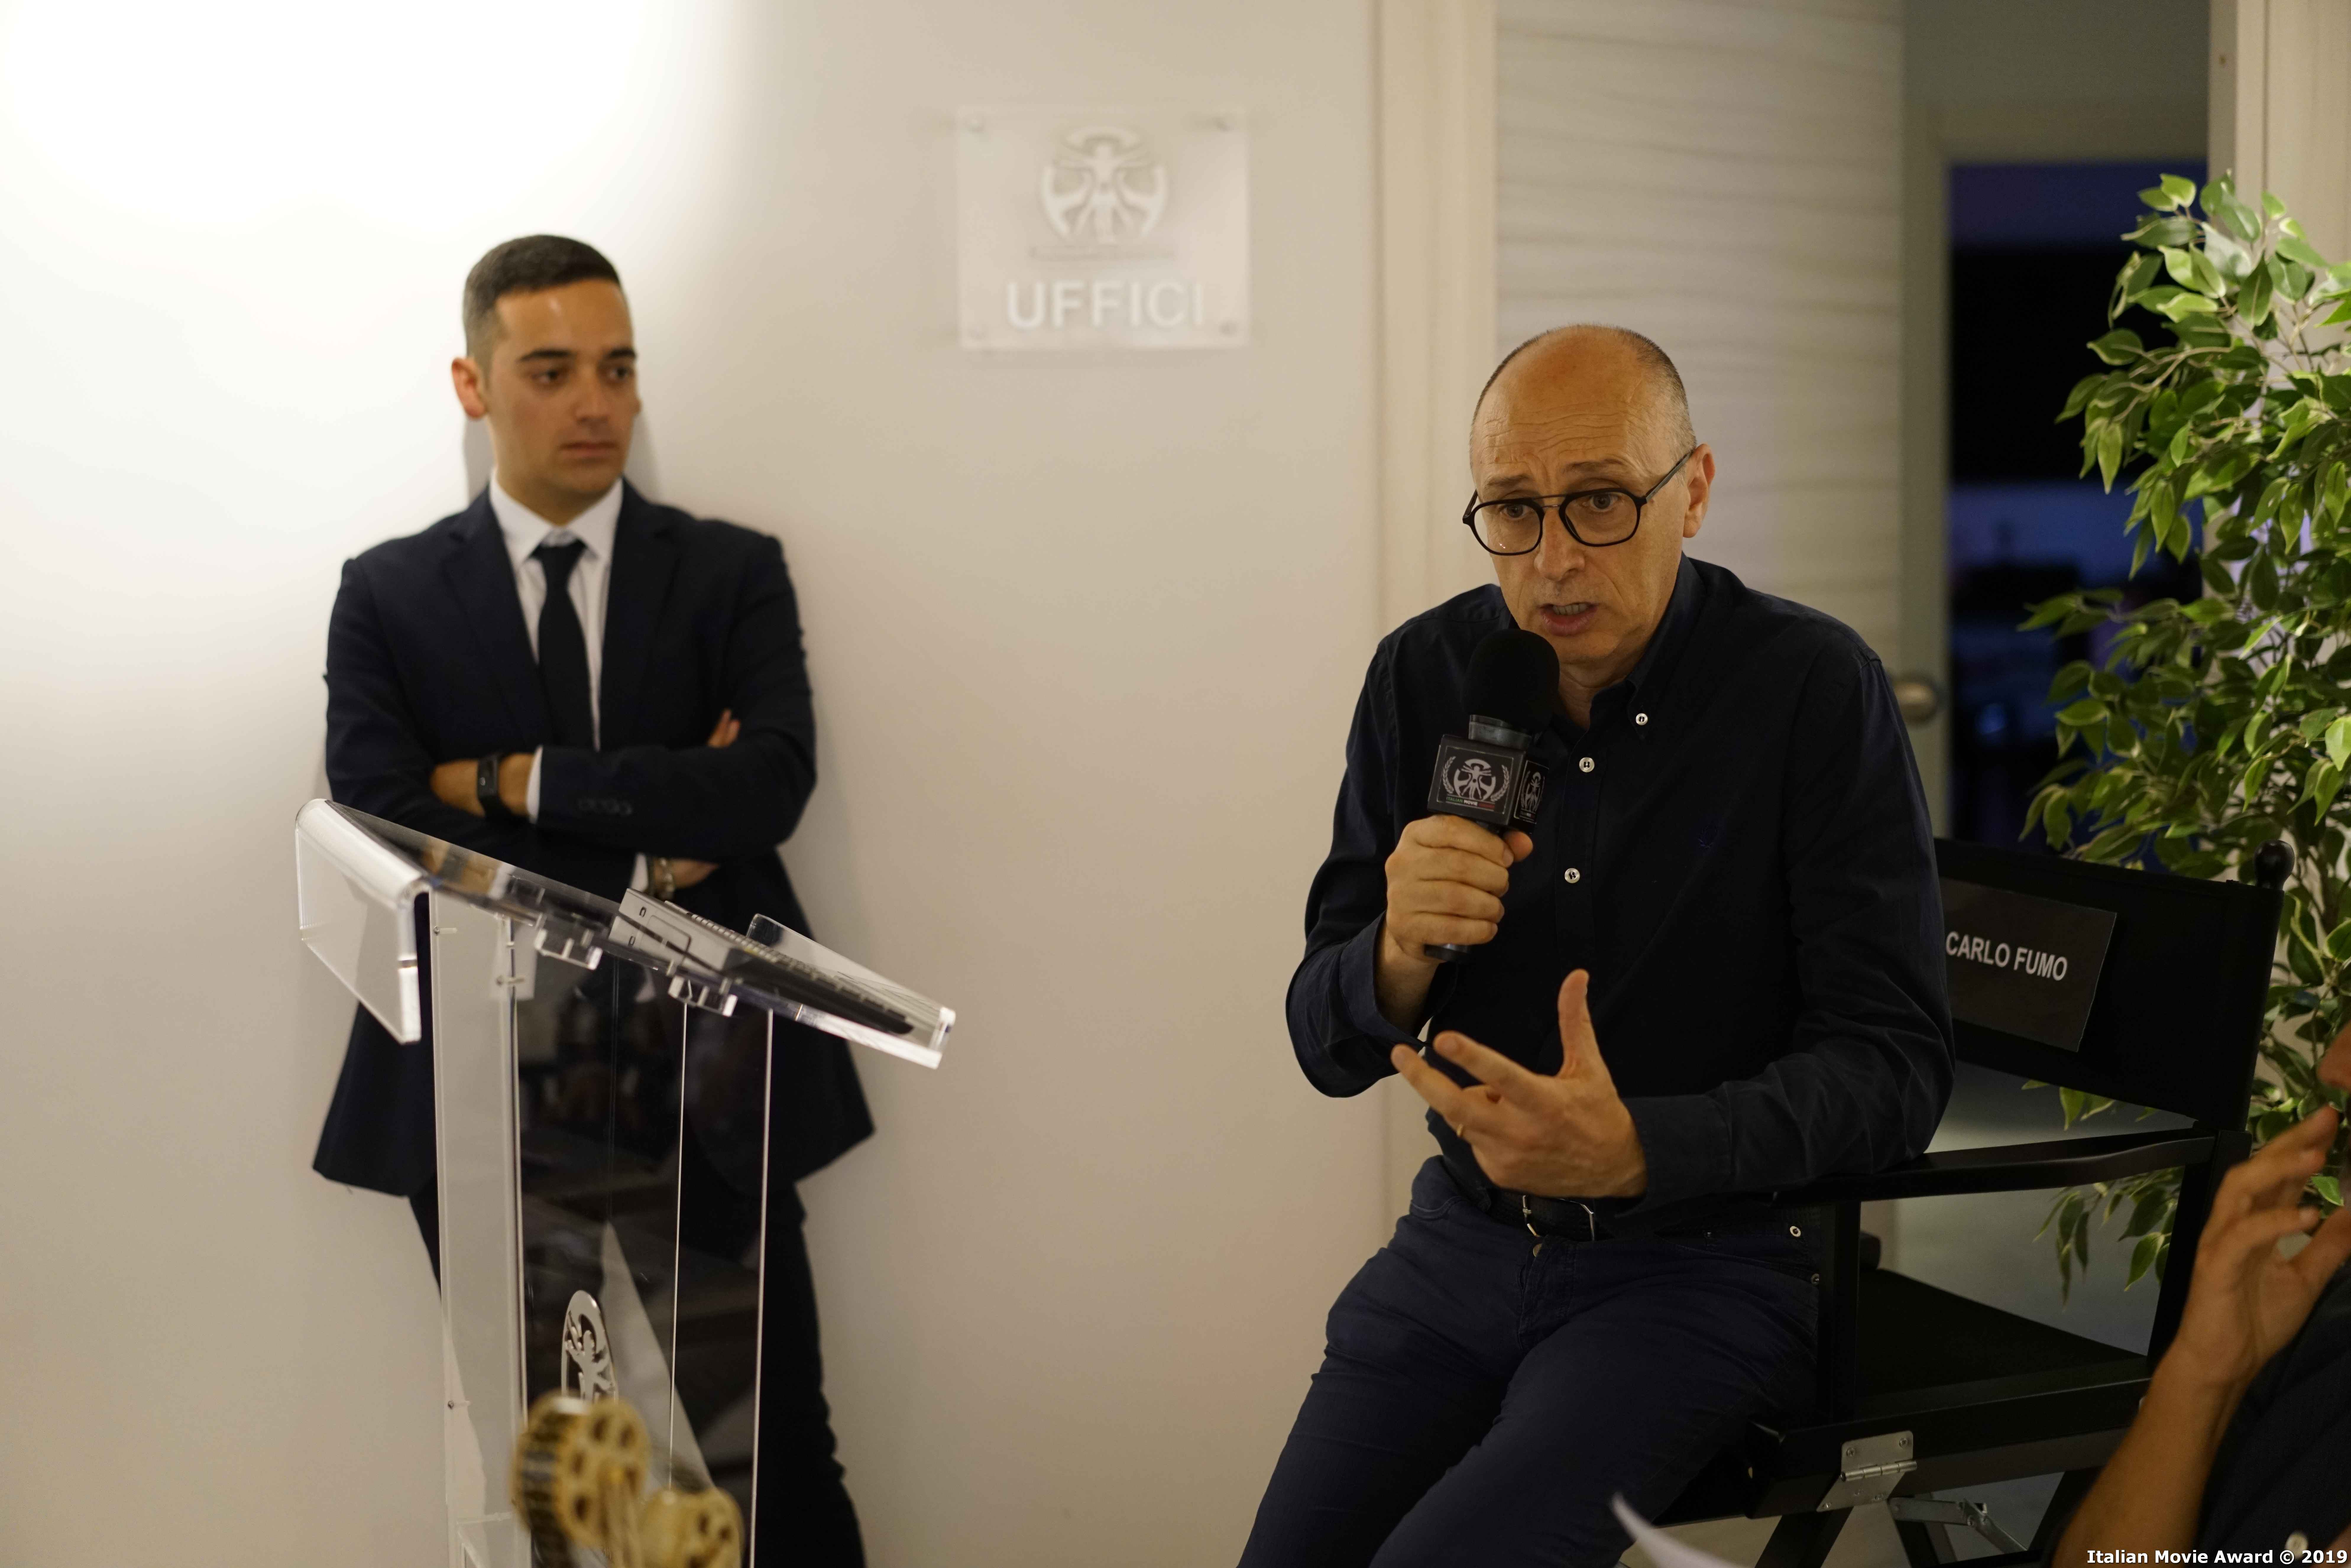 italian_movie_award_2019_conferenza_1_35